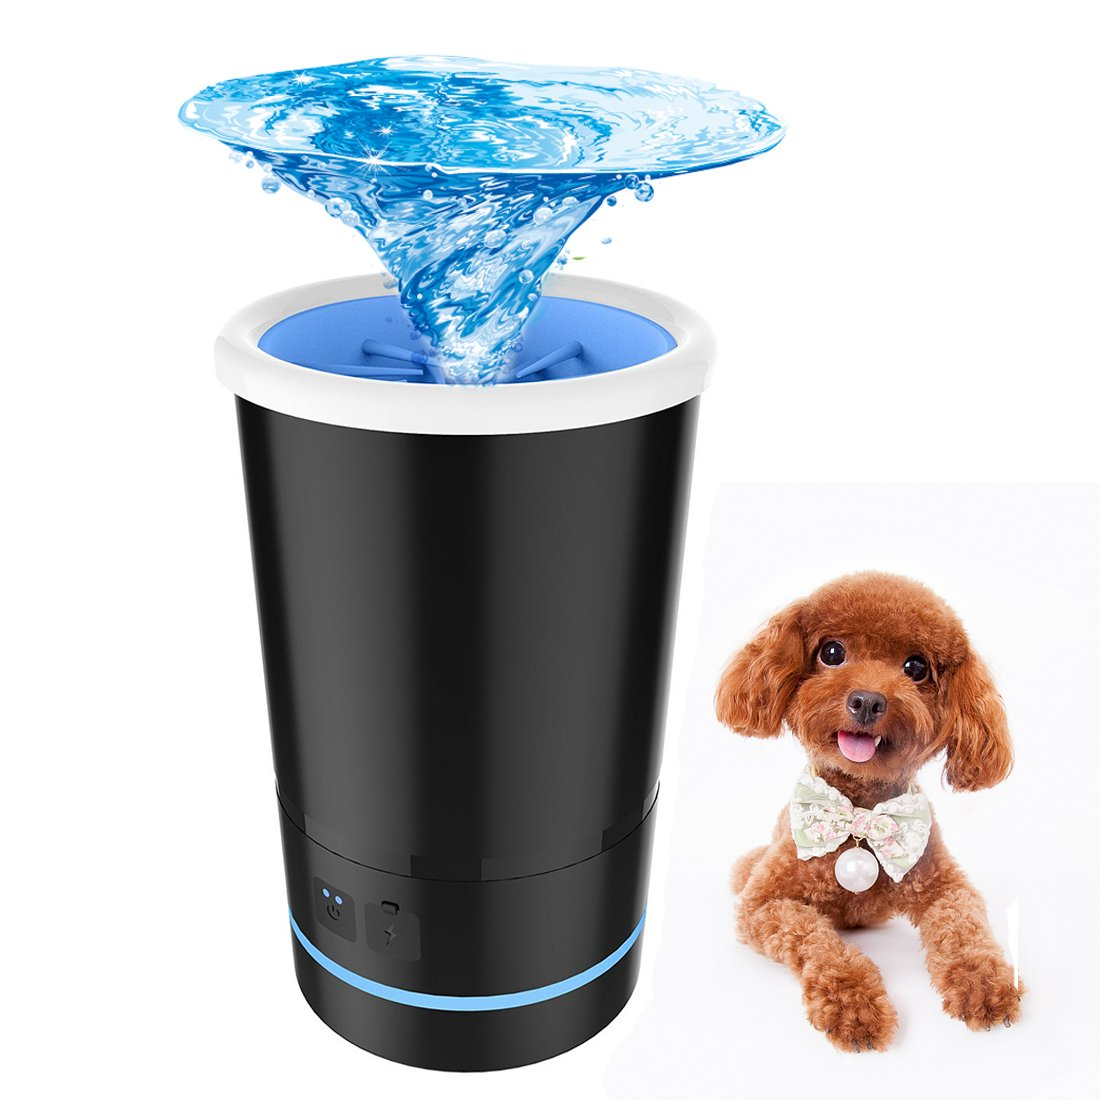 Automatic Dog Paw Cleaner, Portable Pet Foot Washer Cup with USB Charging & Colorful LED Light, Silicone Bristles Pet Clean Brush Cleaning Paw Muddy Feet (Black)